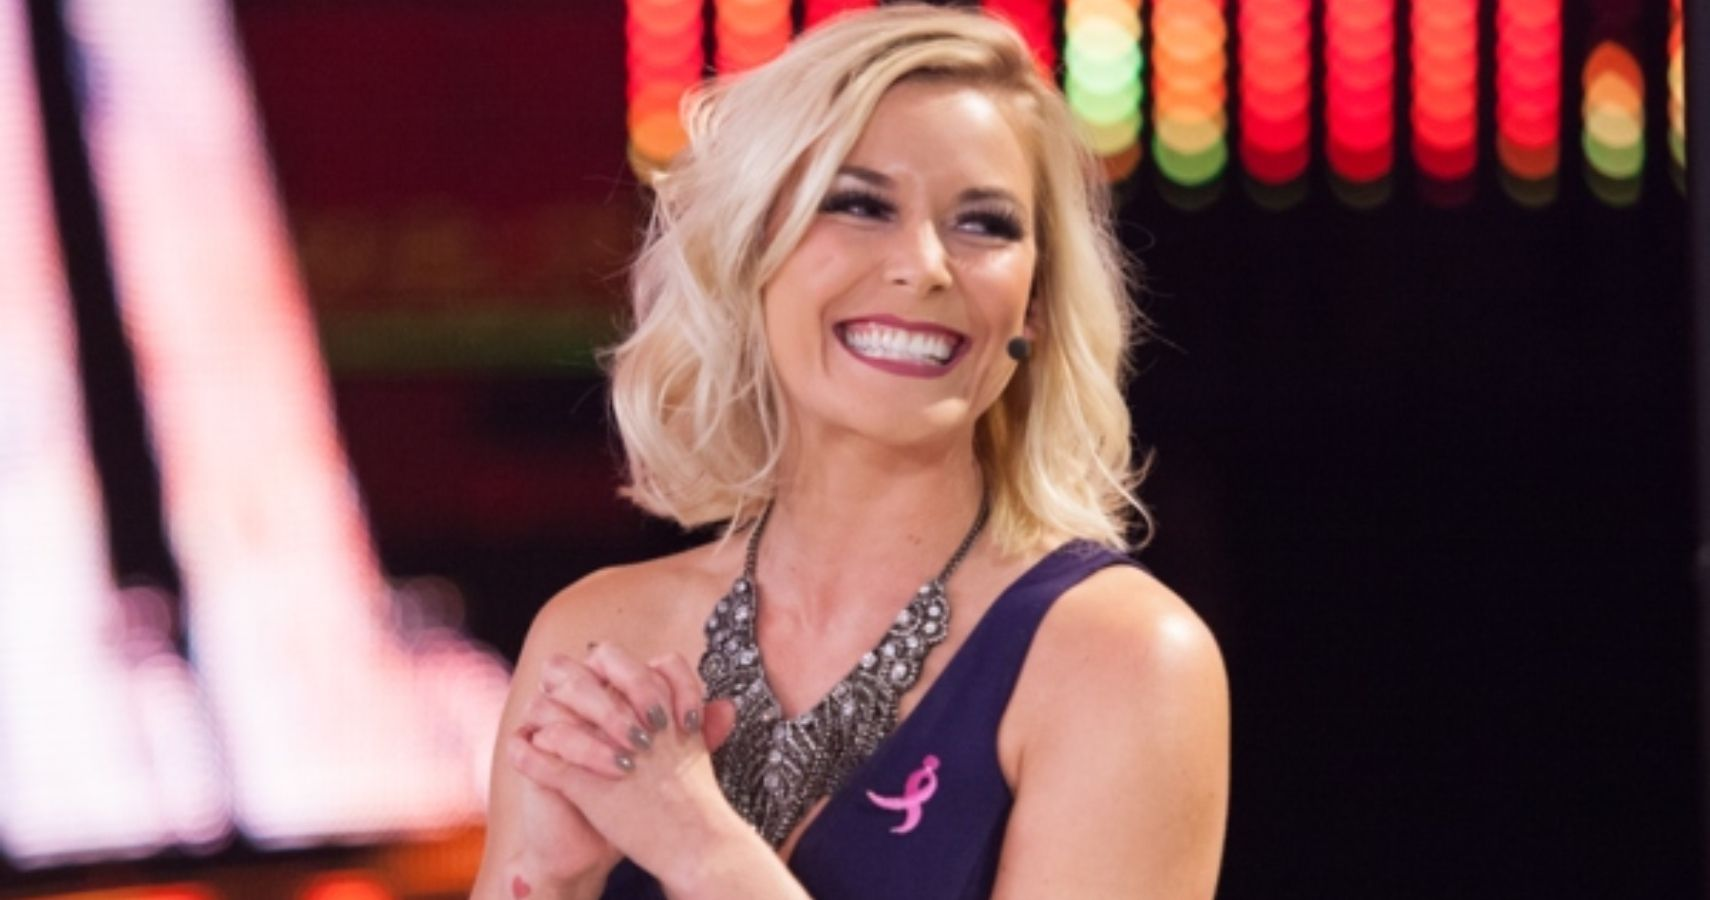 Renee Paquette Reveals What She Least Enjoyed About Working With WWE